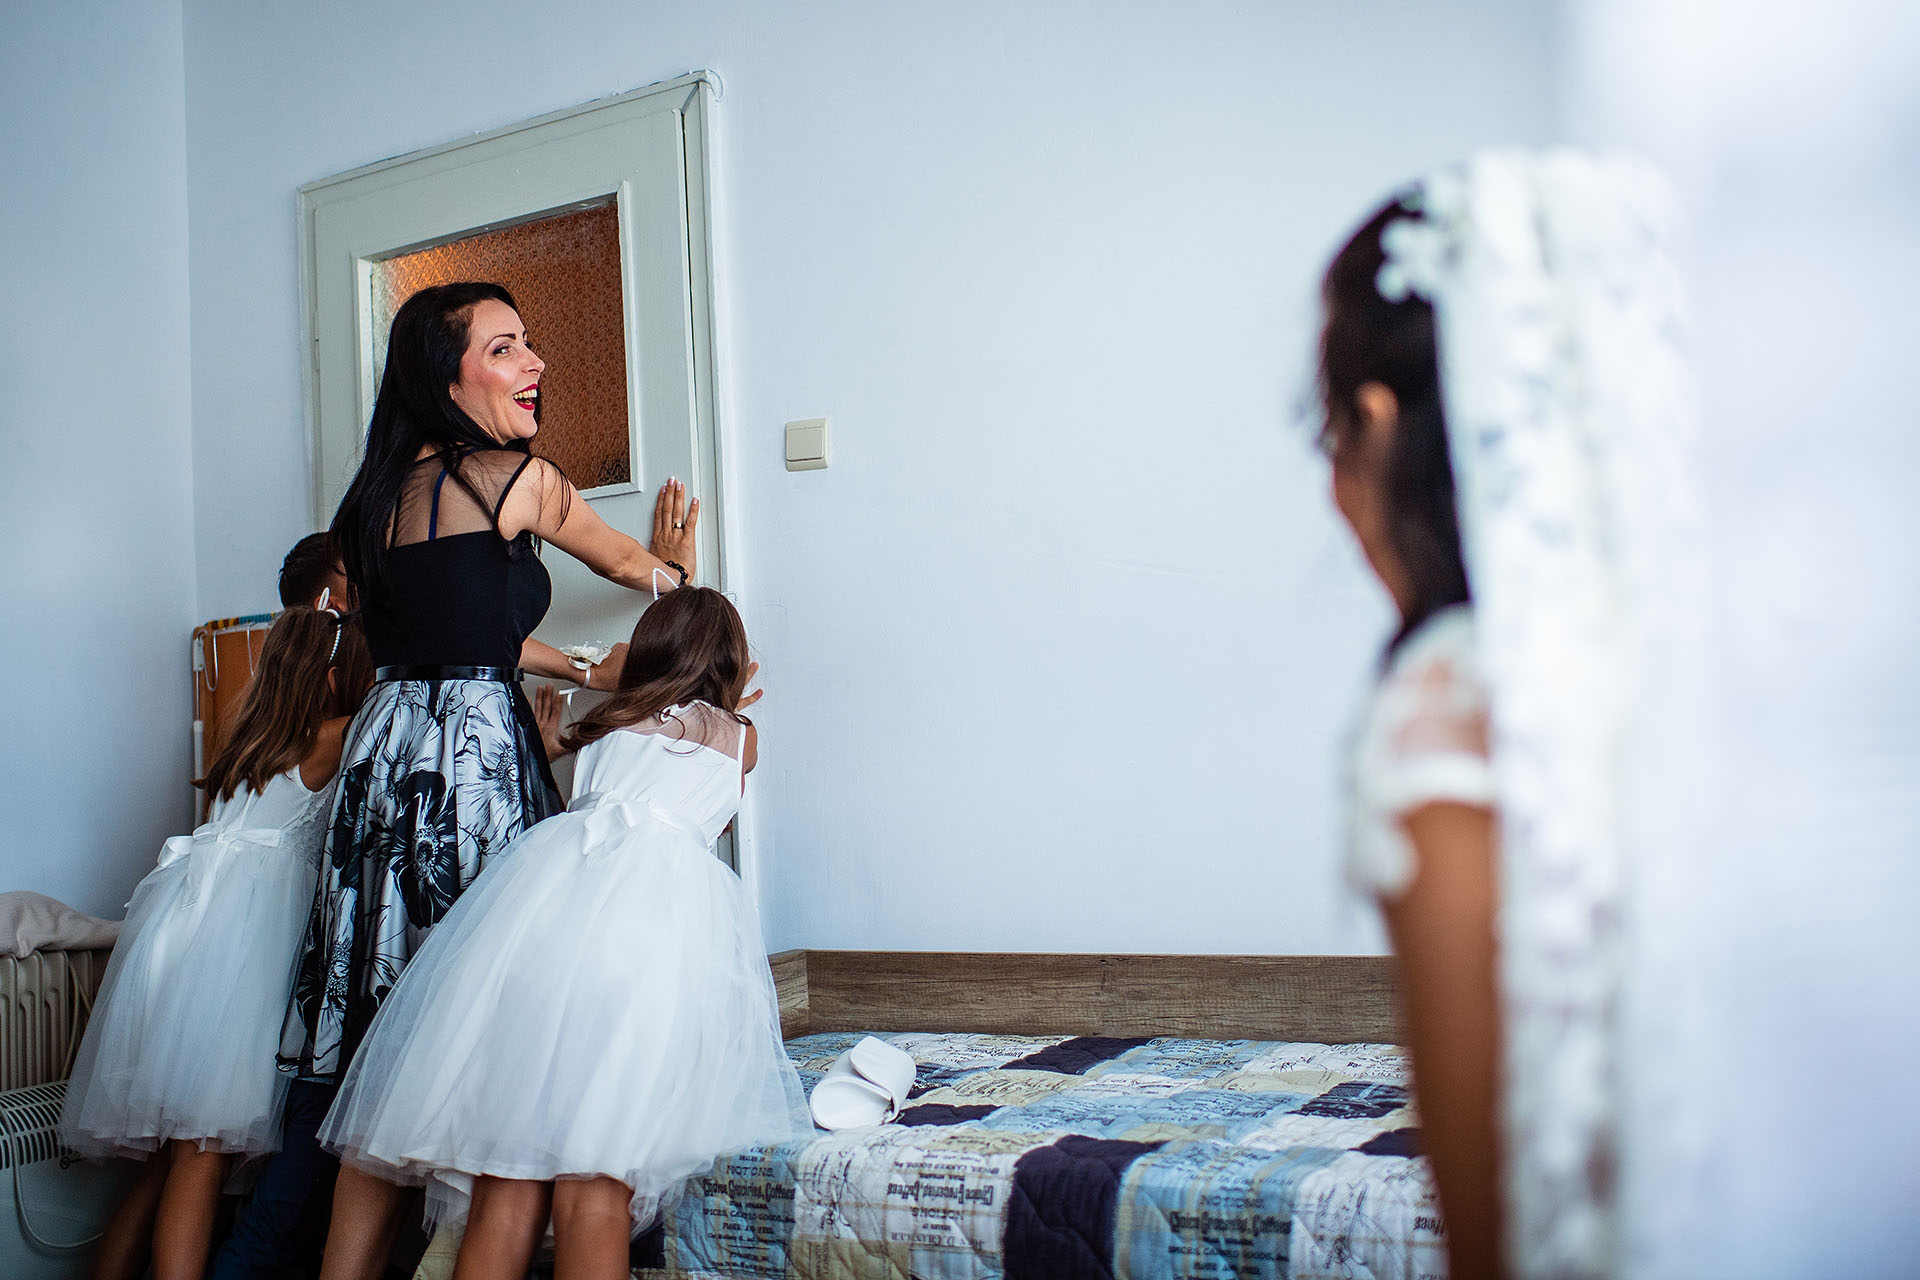 Varna, Bulgaria Elopement Bride Pre-Ceremony Image | The groom and his family have finally arrived, and they stand waiting in front of the door